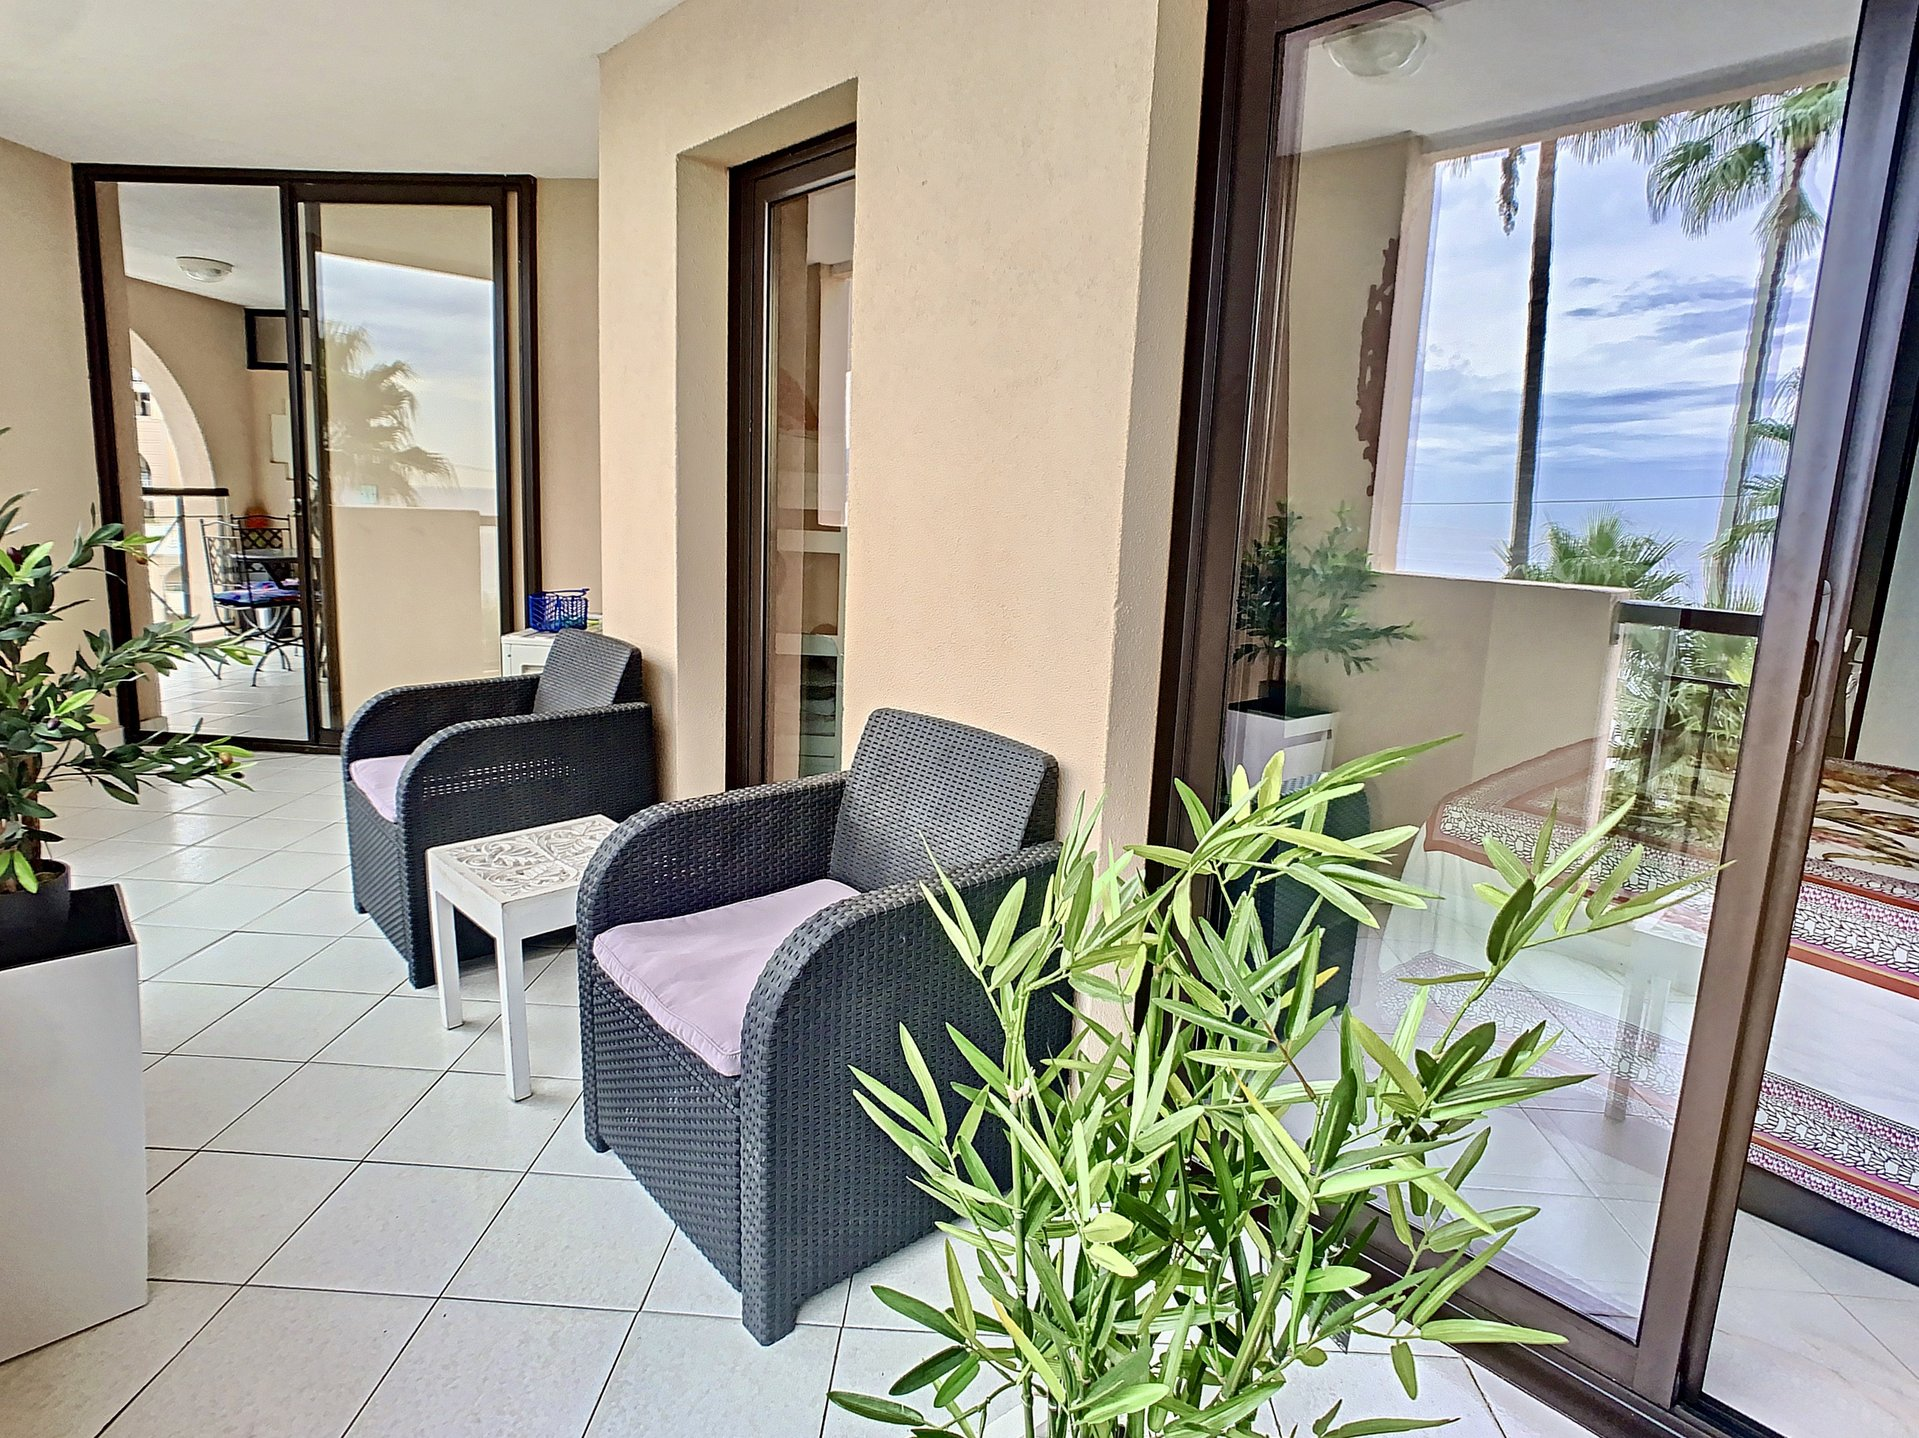 Cannes Midi : 2 Bedroom apartment Panoramic Sea View Parking